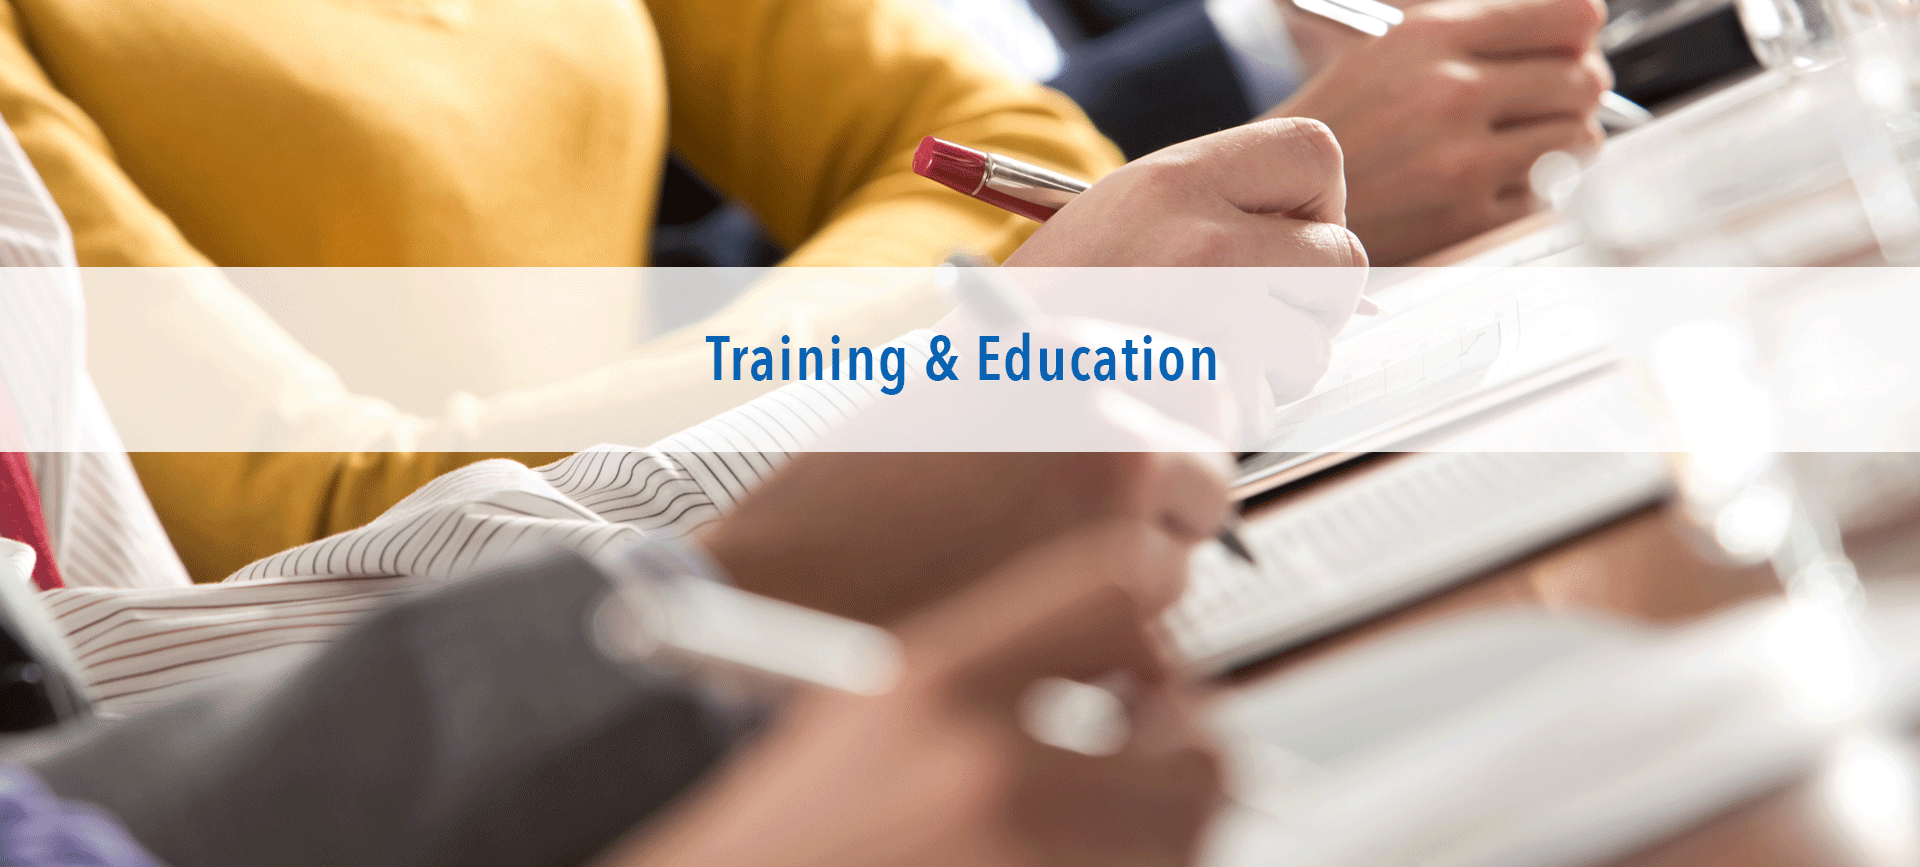 billing & payments for training & education